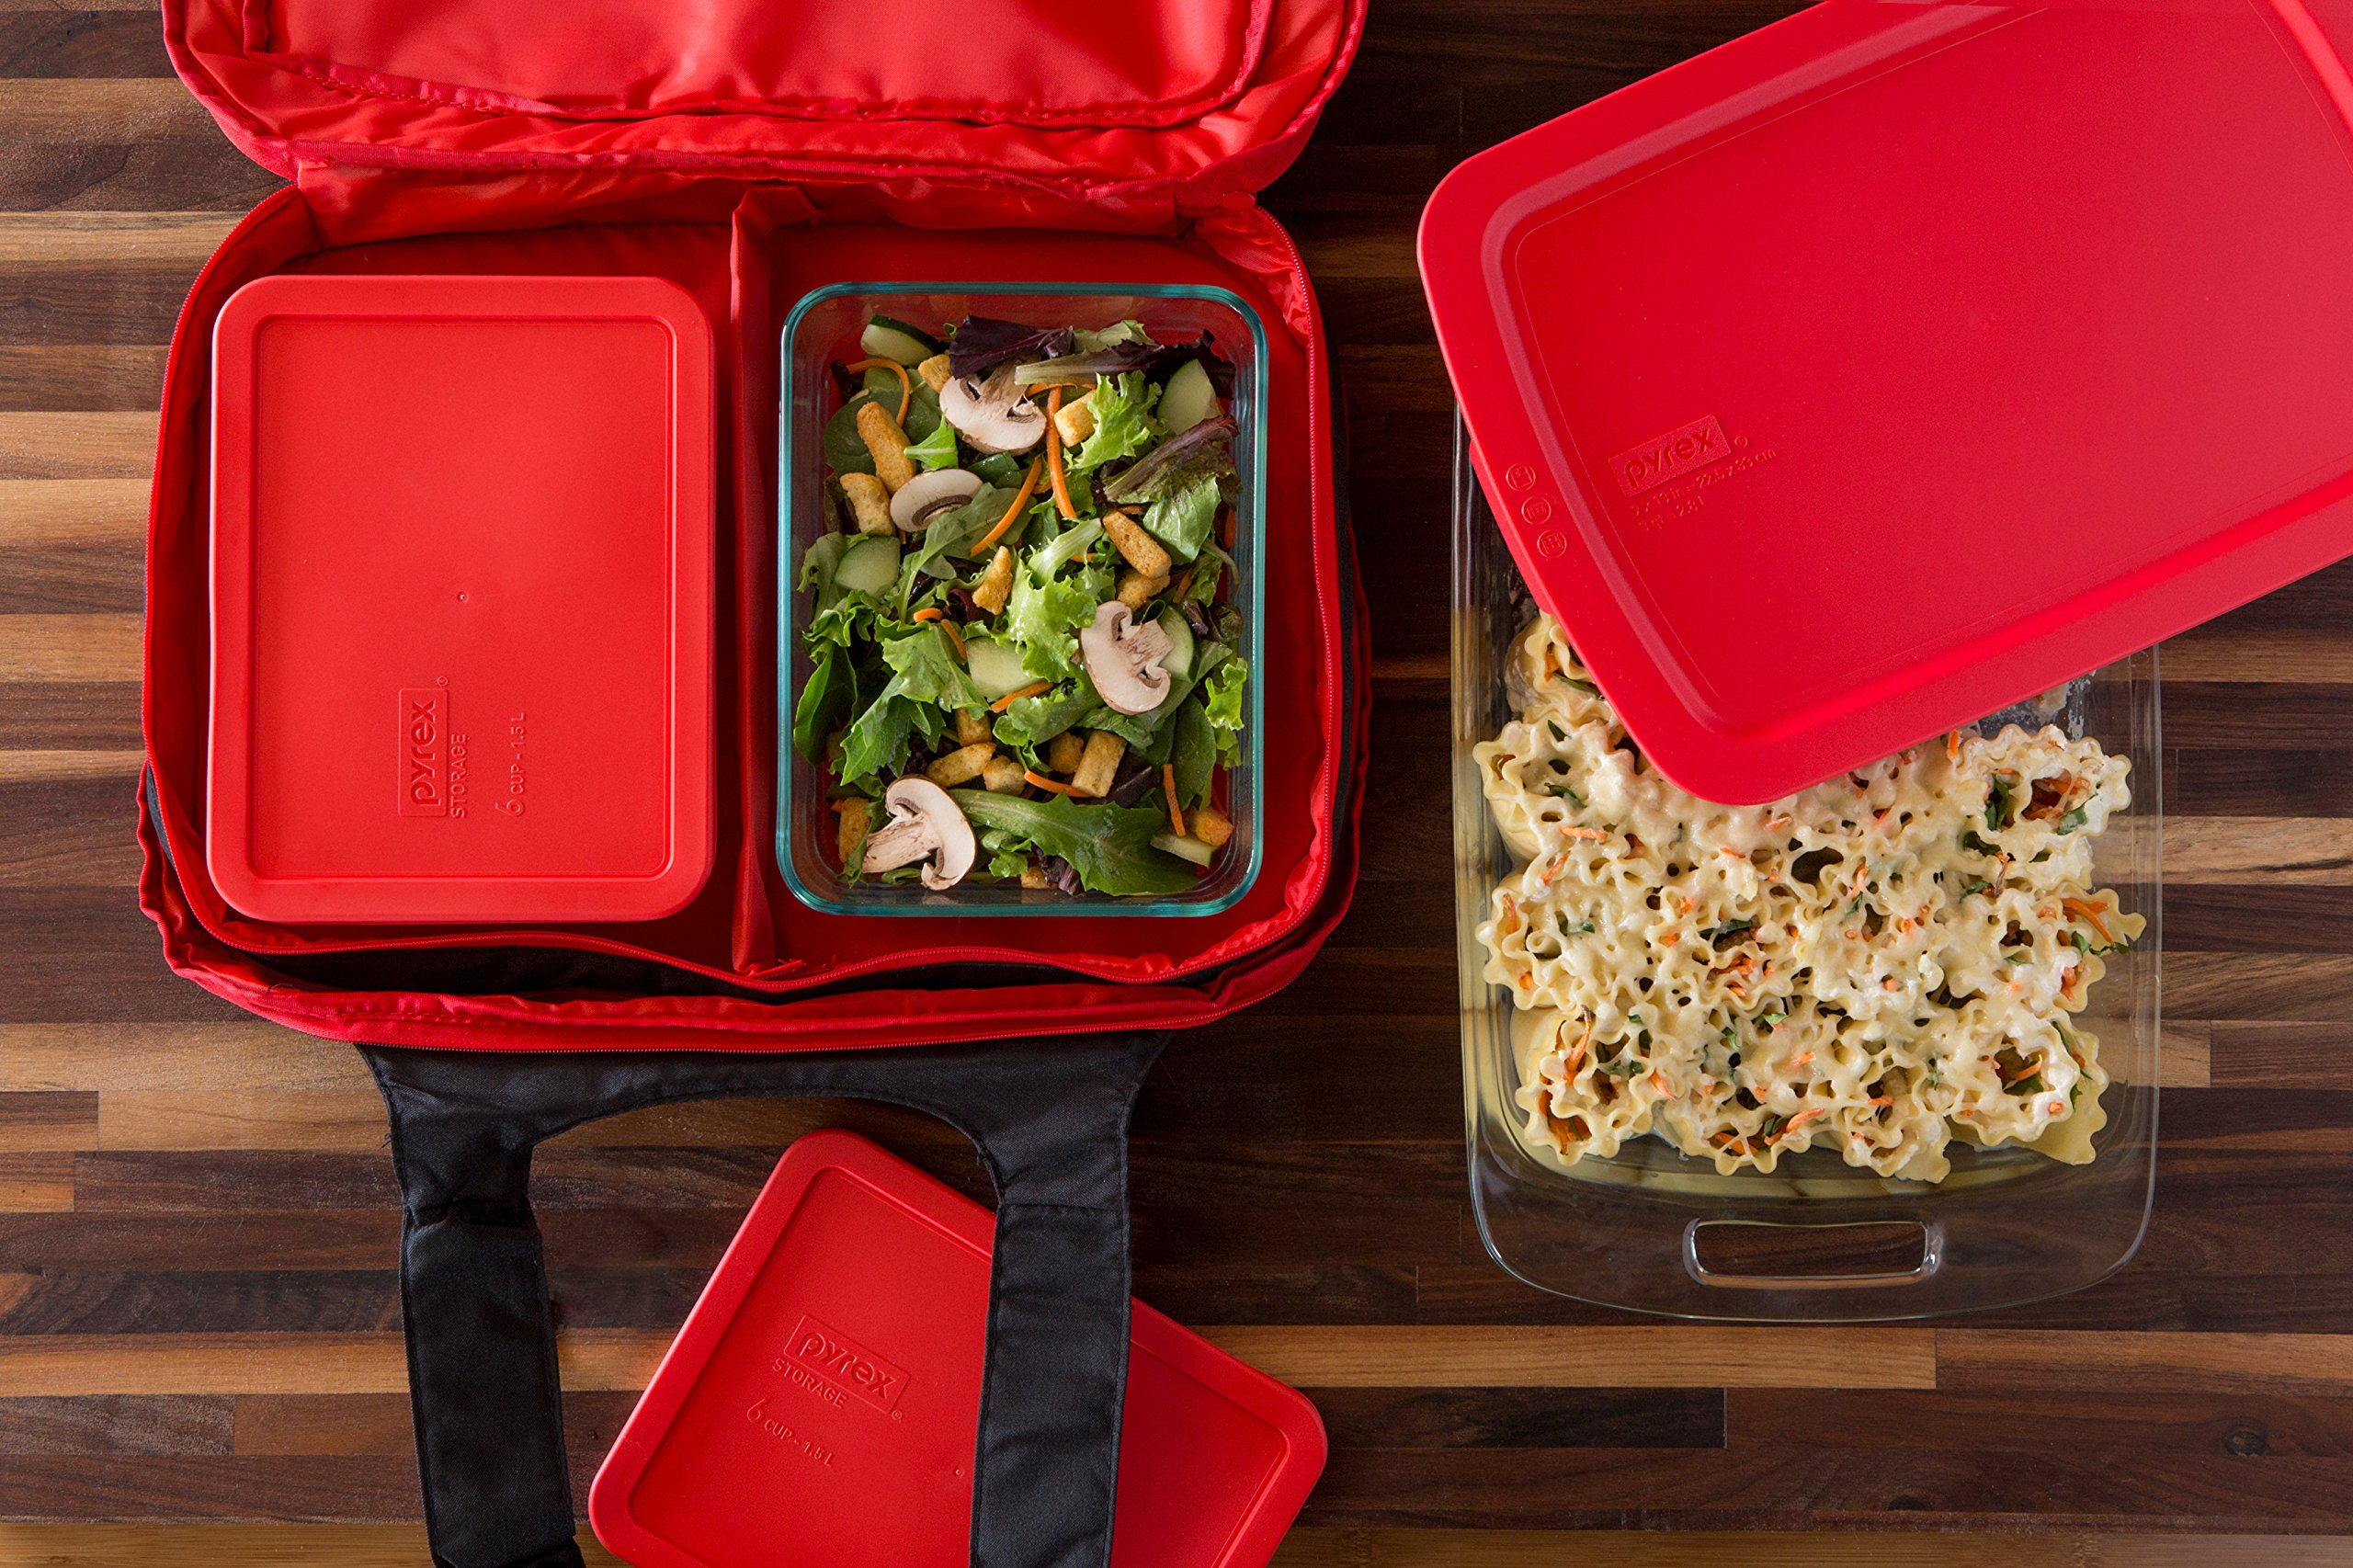 Pyrex Portables Glass Bakeware and Food Storage Set (Black Carrier, 9-Piece Double Decker, BPA-free) by Pyrex (Image #2)